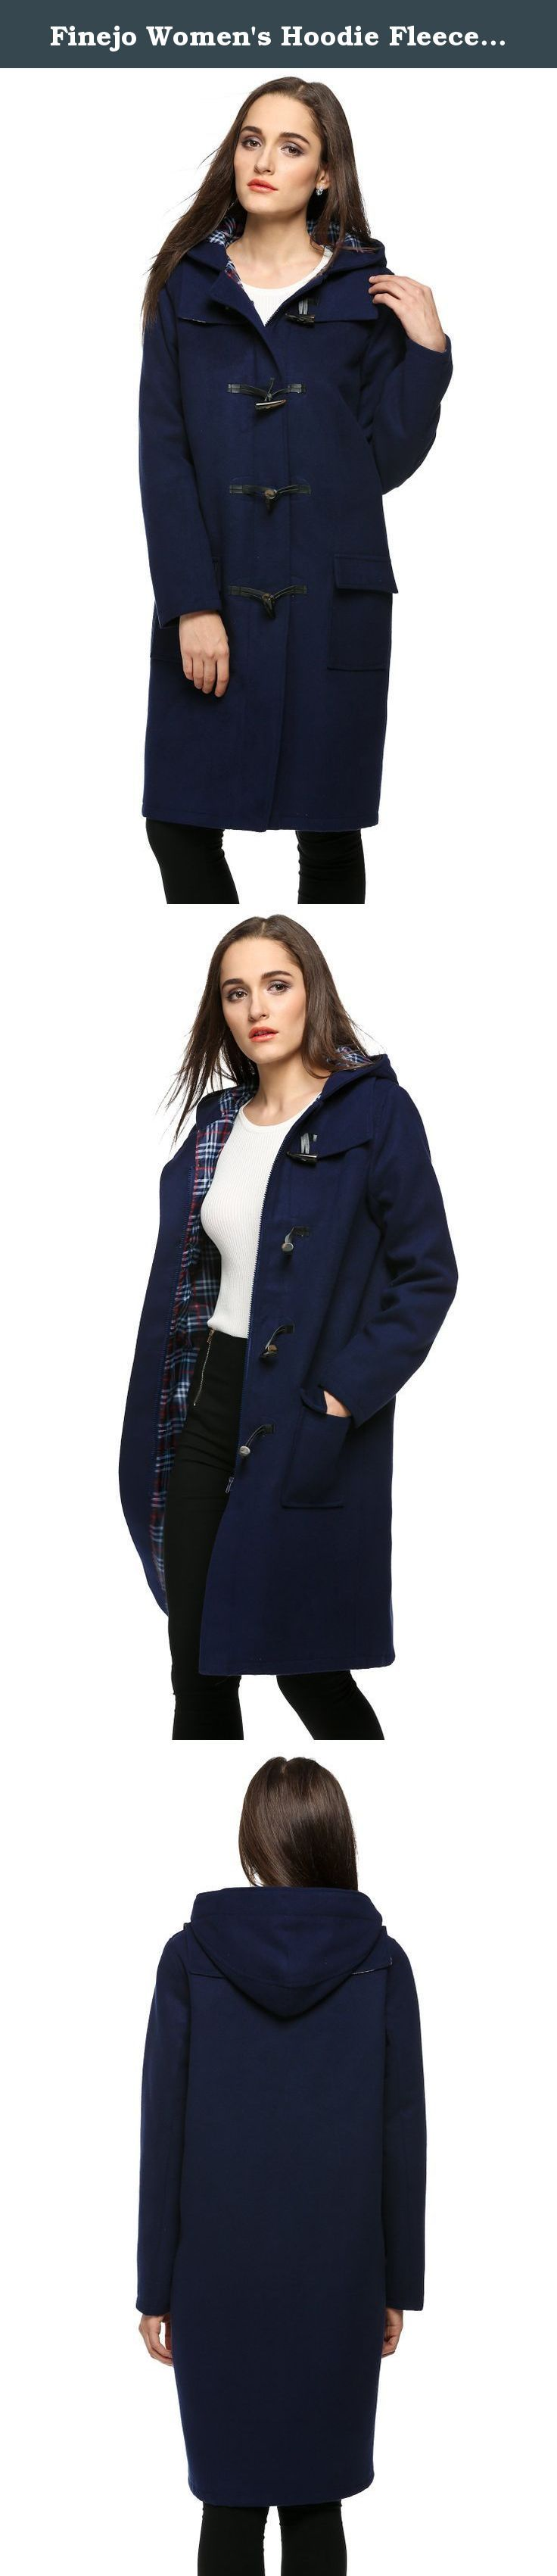 Finejo Women's Hoodie Fleece Jacket Duffle Style Toggle Wool Coat Pea Coat, Navy Blue, Medium. Features nice and thickly insulated for winter days.